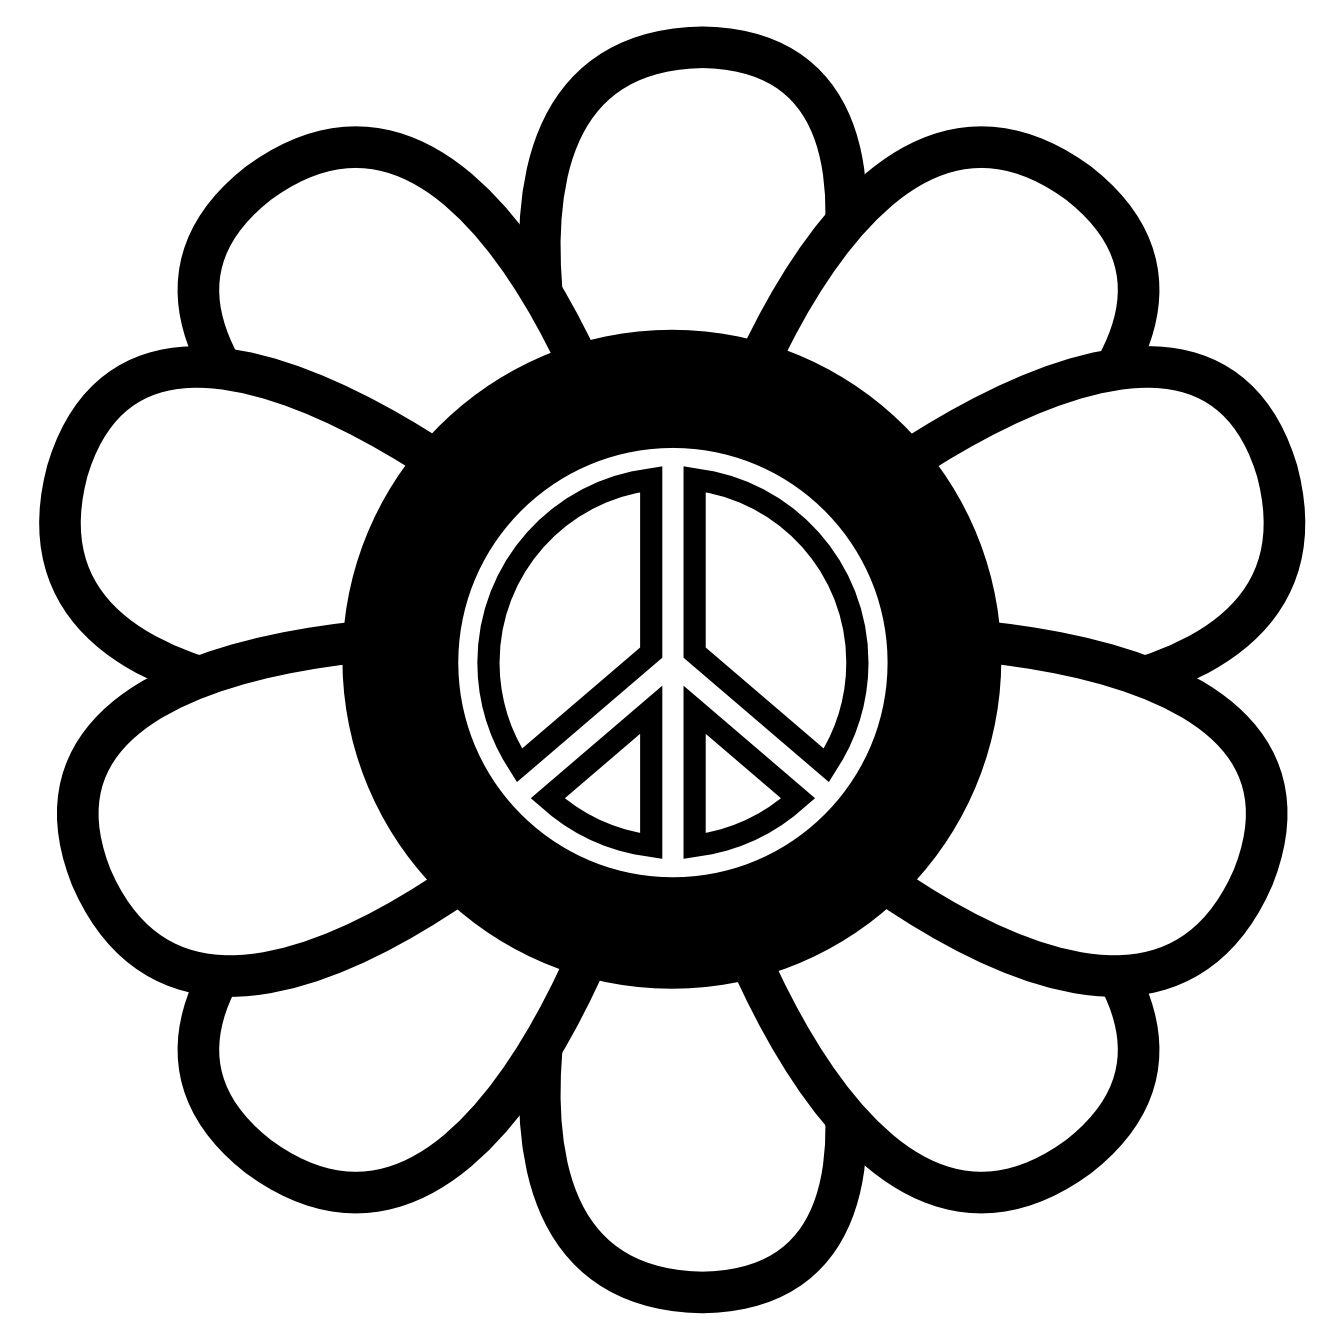 It's just an image of Accomplished Peace Sign Coloring Page